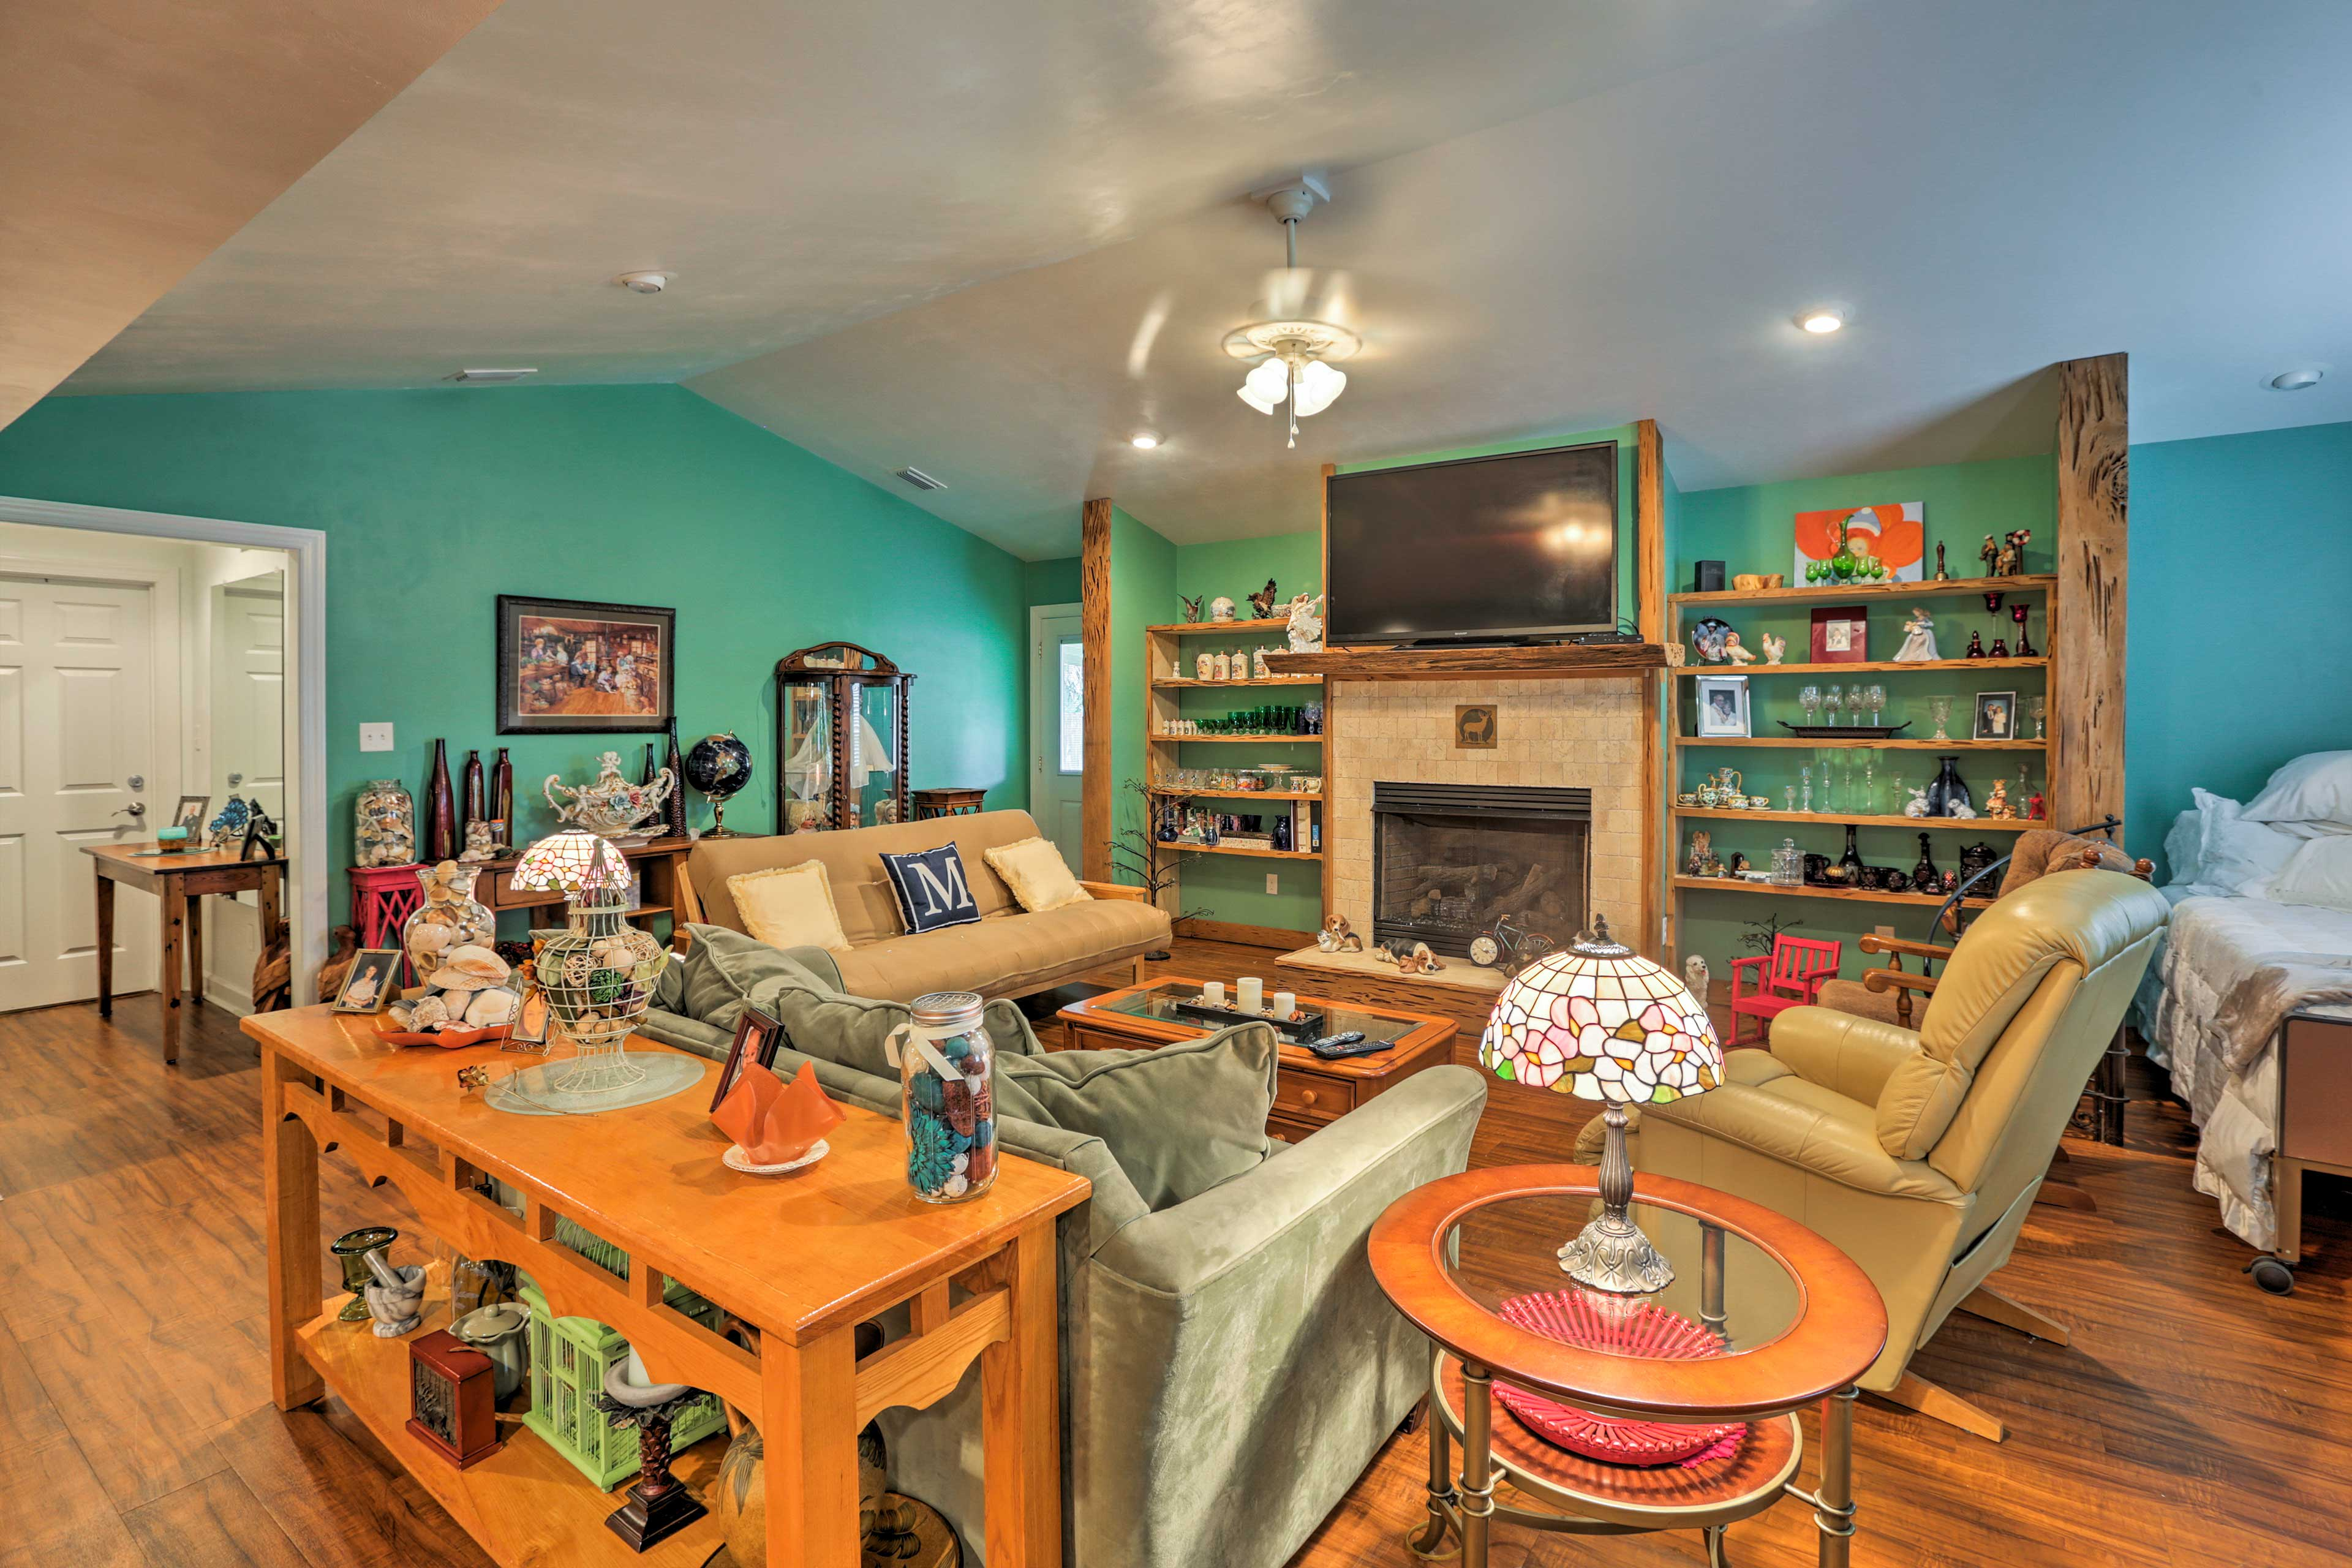 This property offers 2,390 square feet of living space.